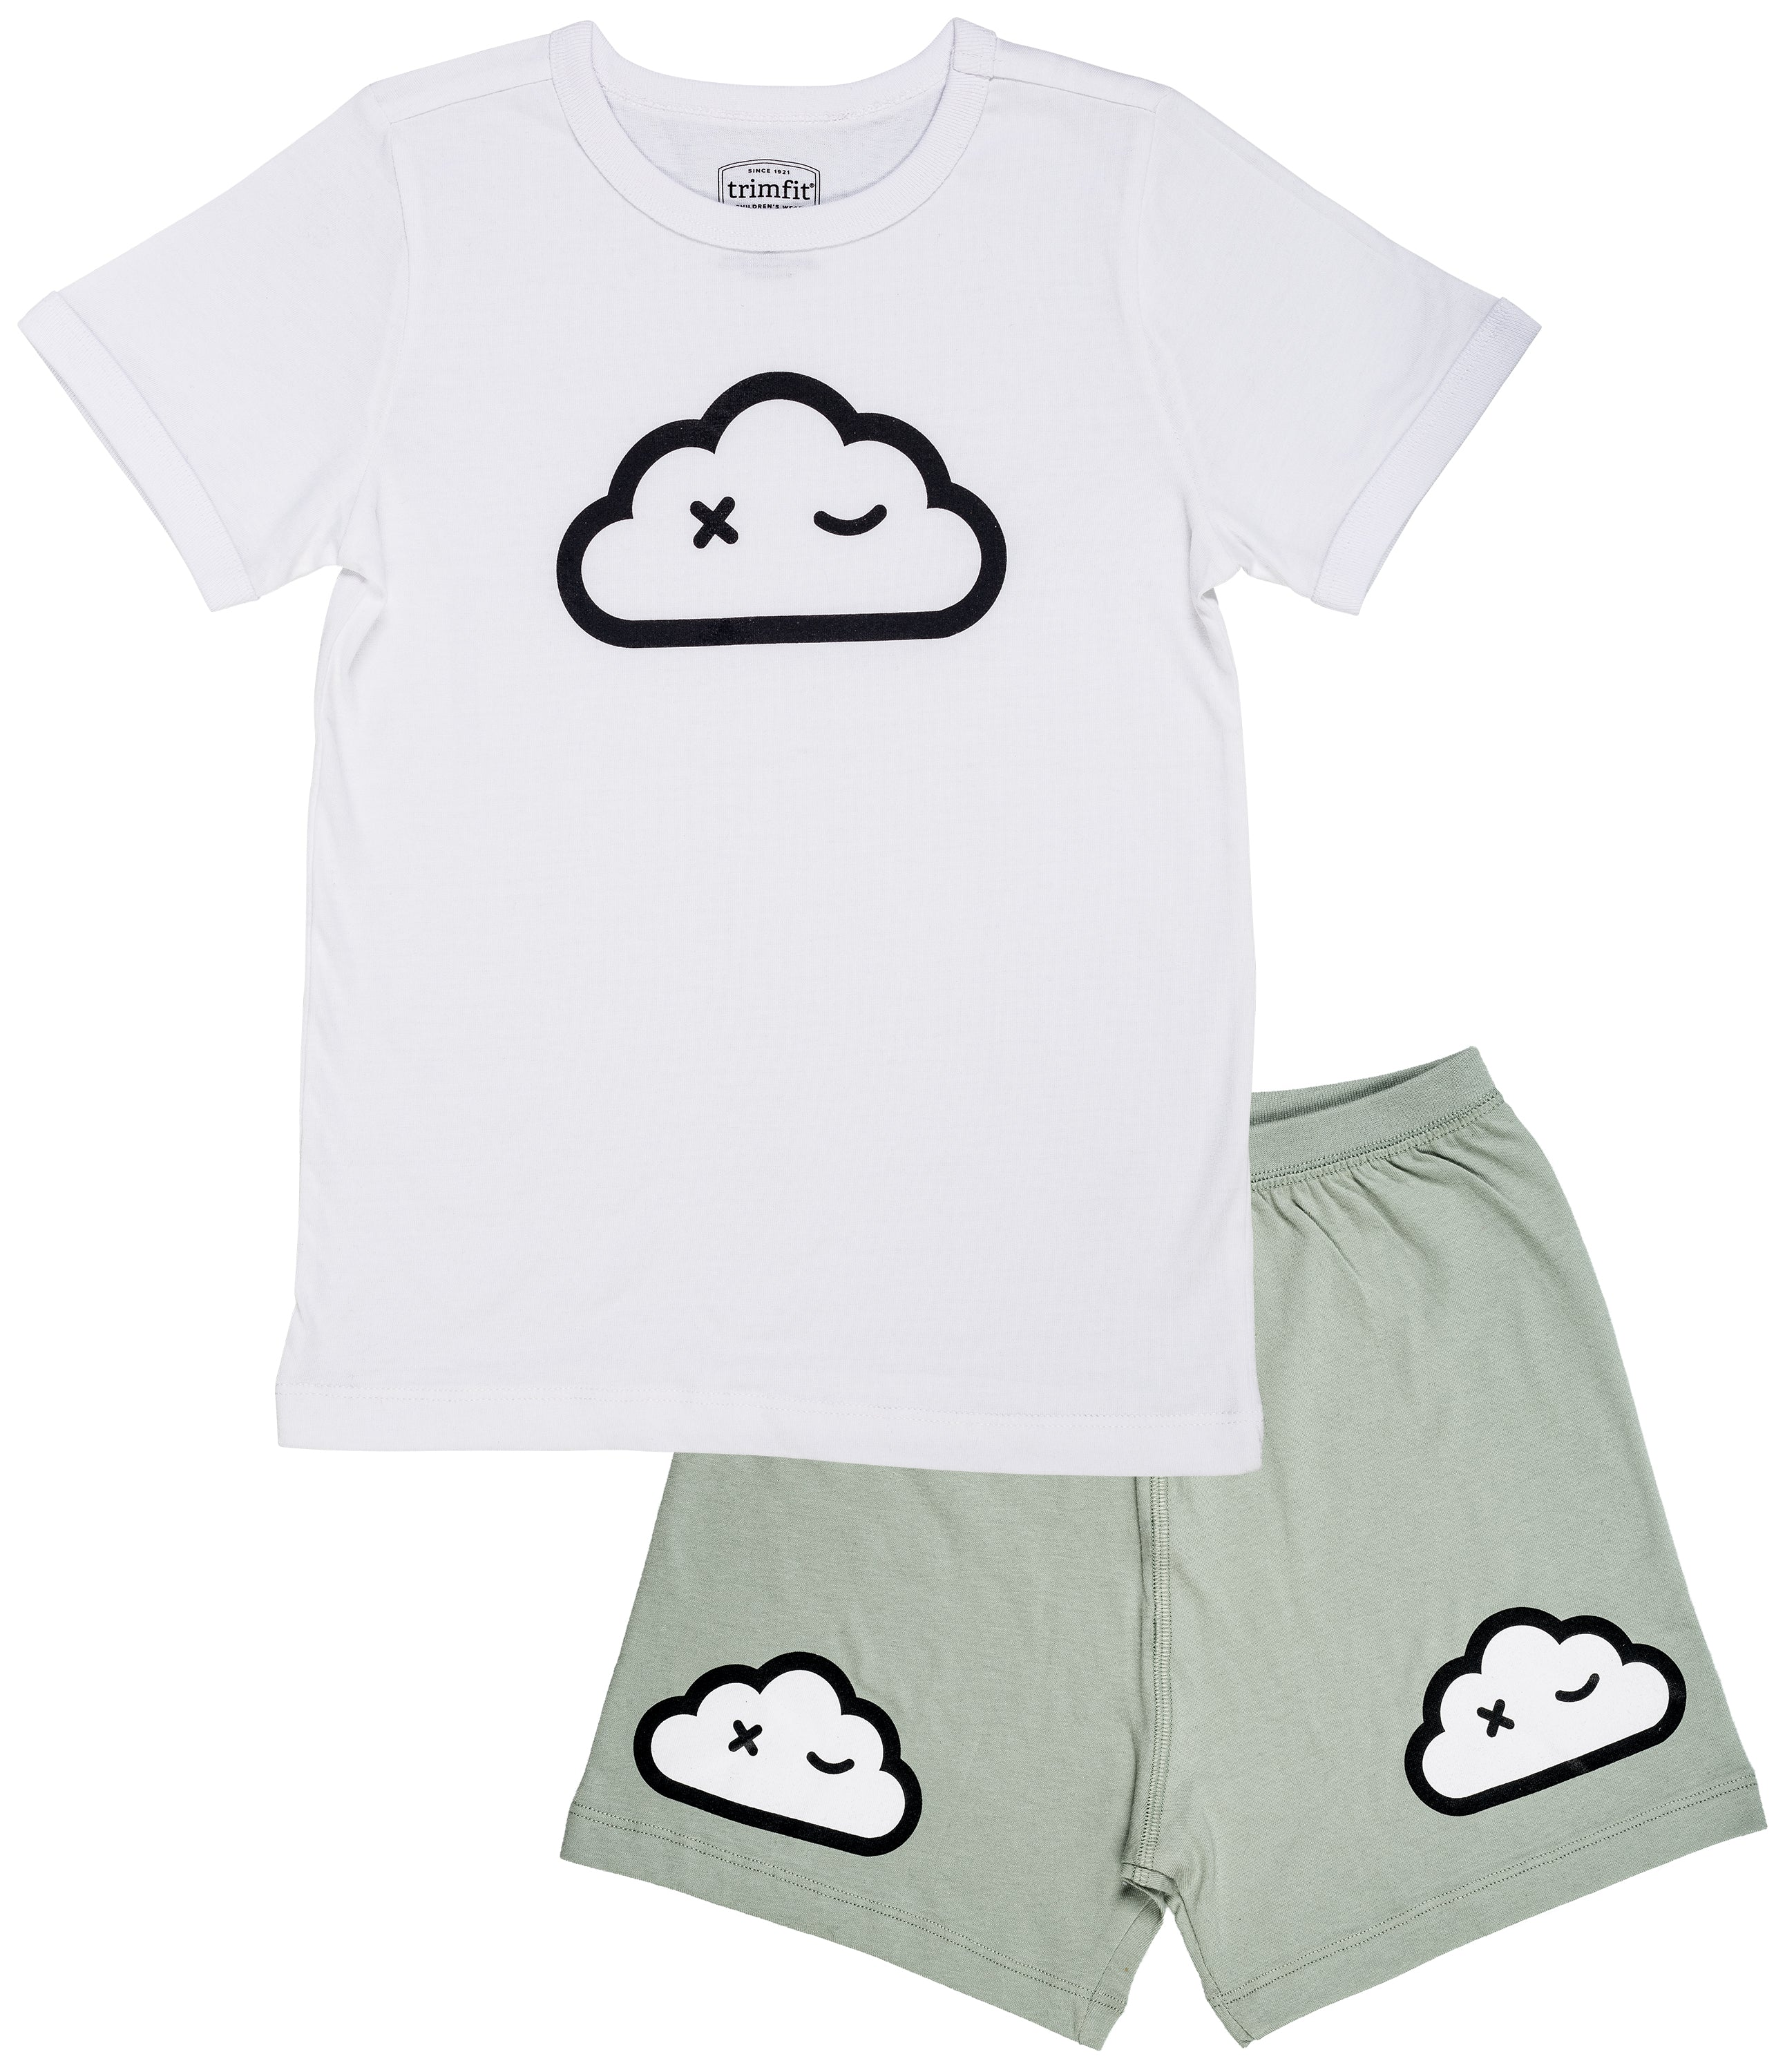 Cloud Wink Organic Cotton Short Sleeve Pajama Set